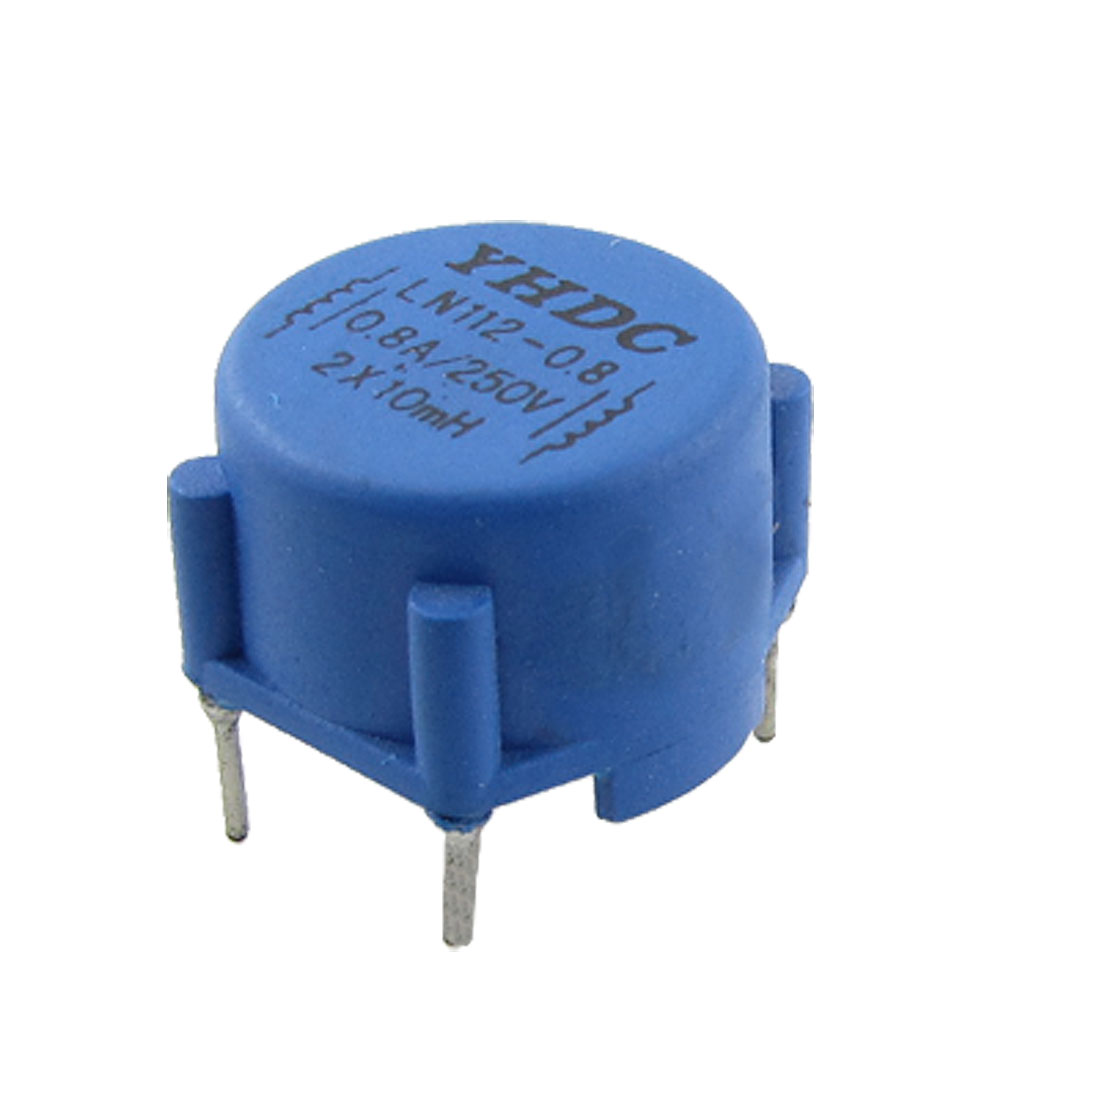 0.8A Rated Current Epoxy Resin Embedding Common Mode Choke